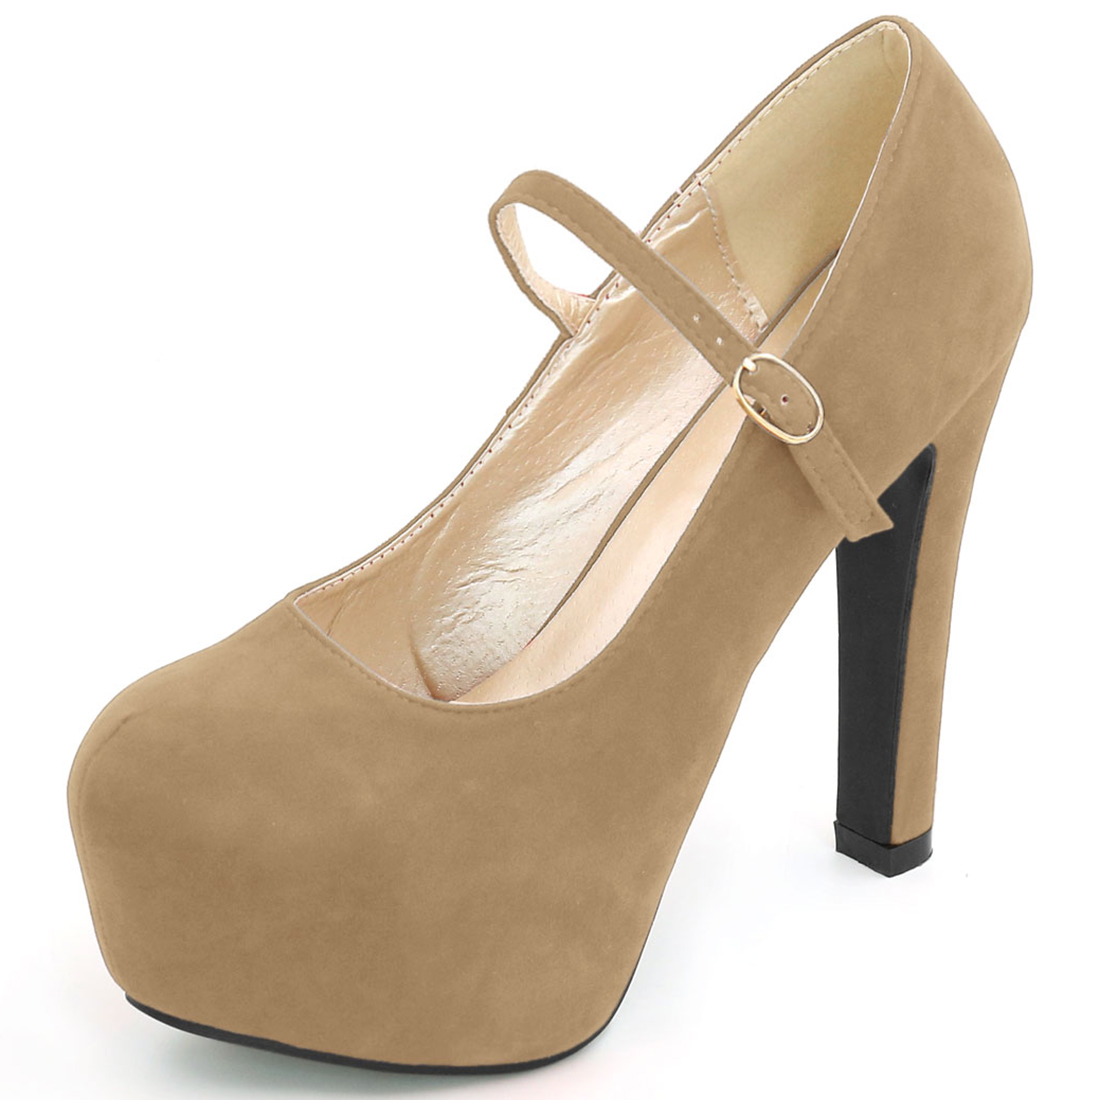 Woman Rounded Toe Chunky Platform Buckle Strap Pumps Dark Beige US 9